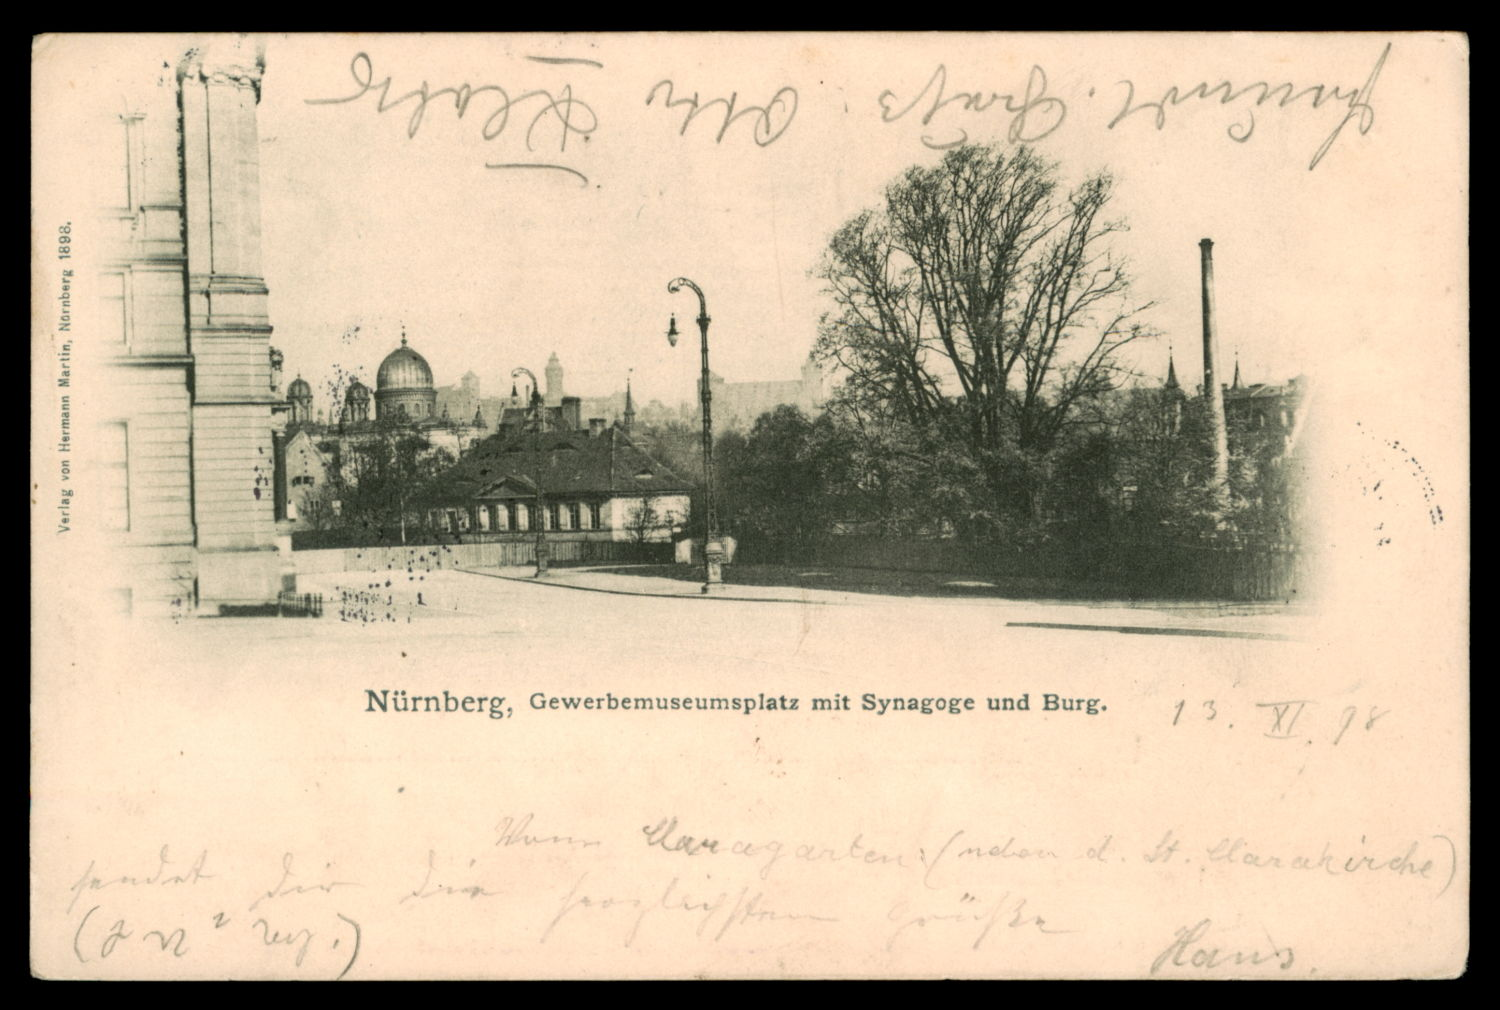 Lot 2 - synagogue postcards  -   Auction #3